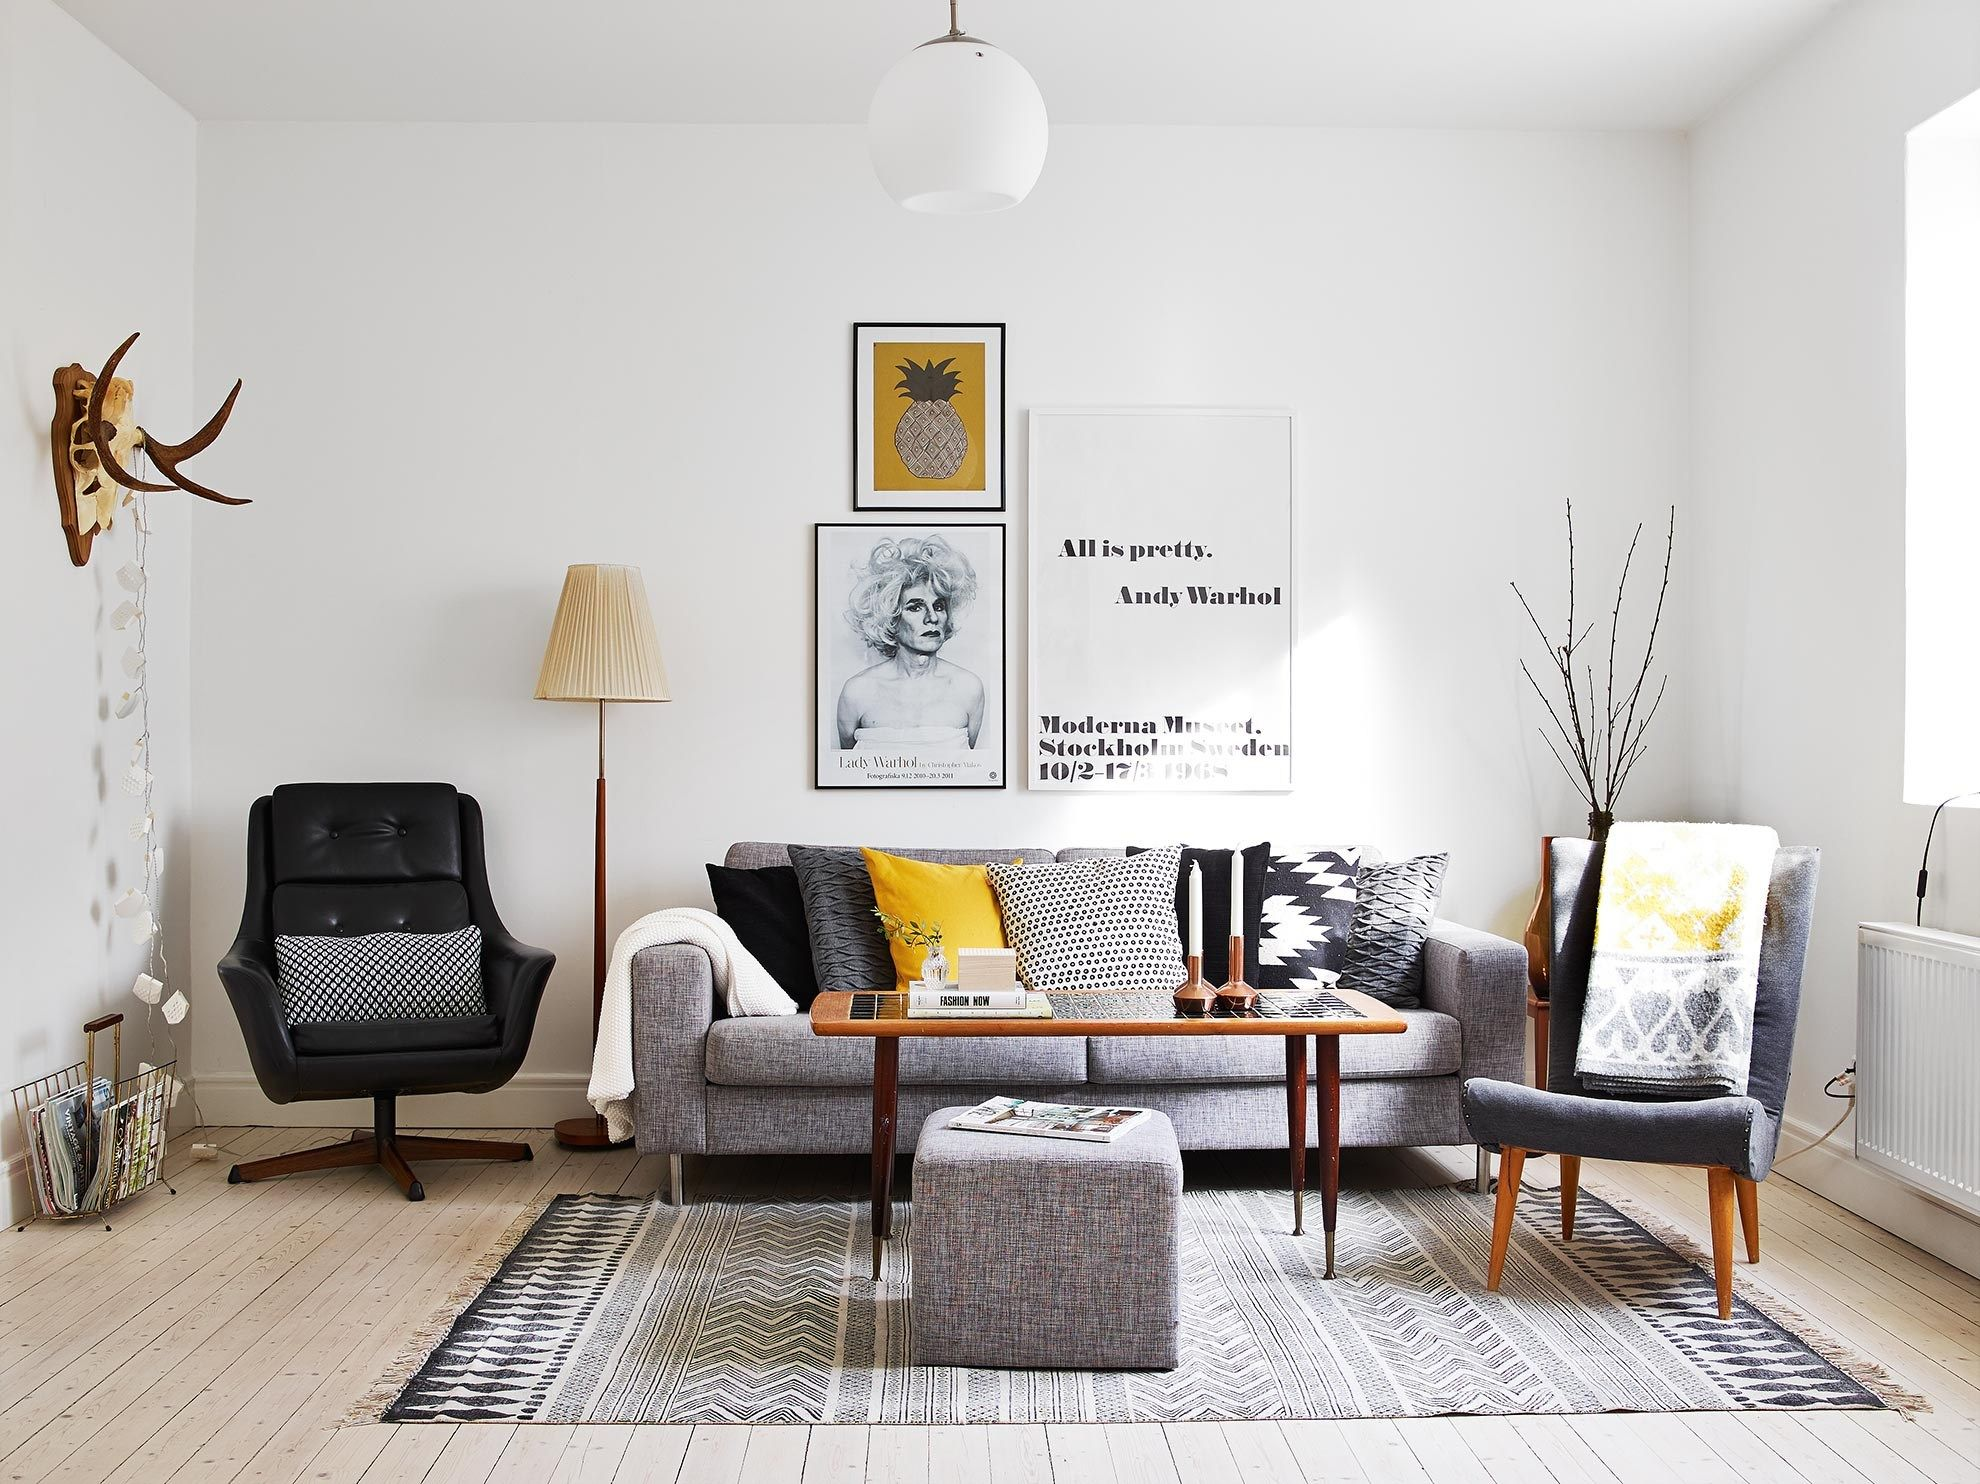 Decorar con amarillo y gris | Pinterest | Salons, Mid century and ...